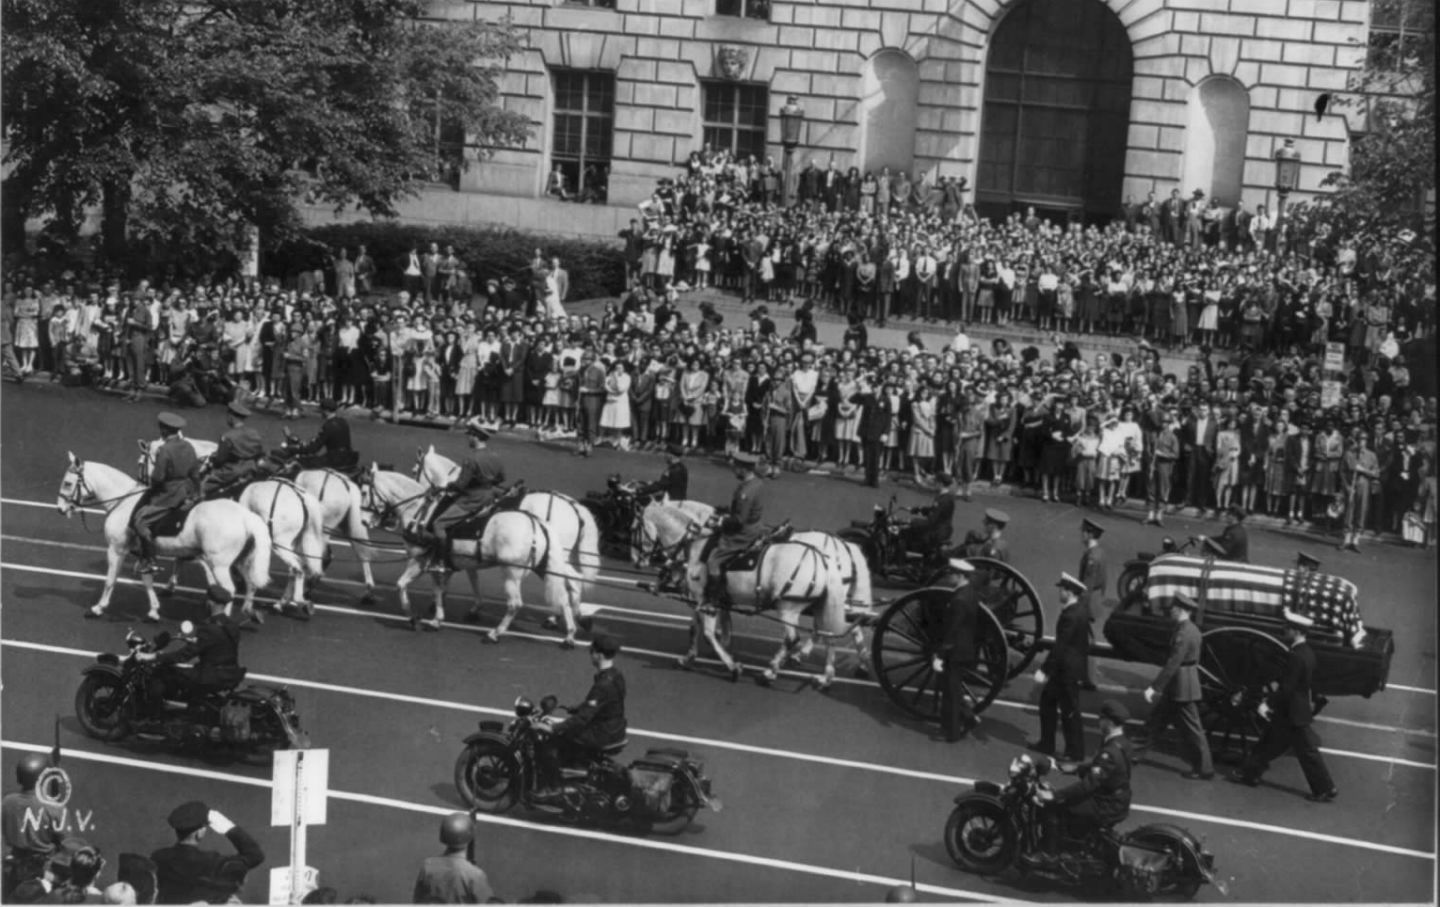 president franklin d roosevelt dies the nation franklin roosevelt s funeral procession headed down pennsylvania avenue in washington d c 1945 nearly 300 000 people came to pay their respects